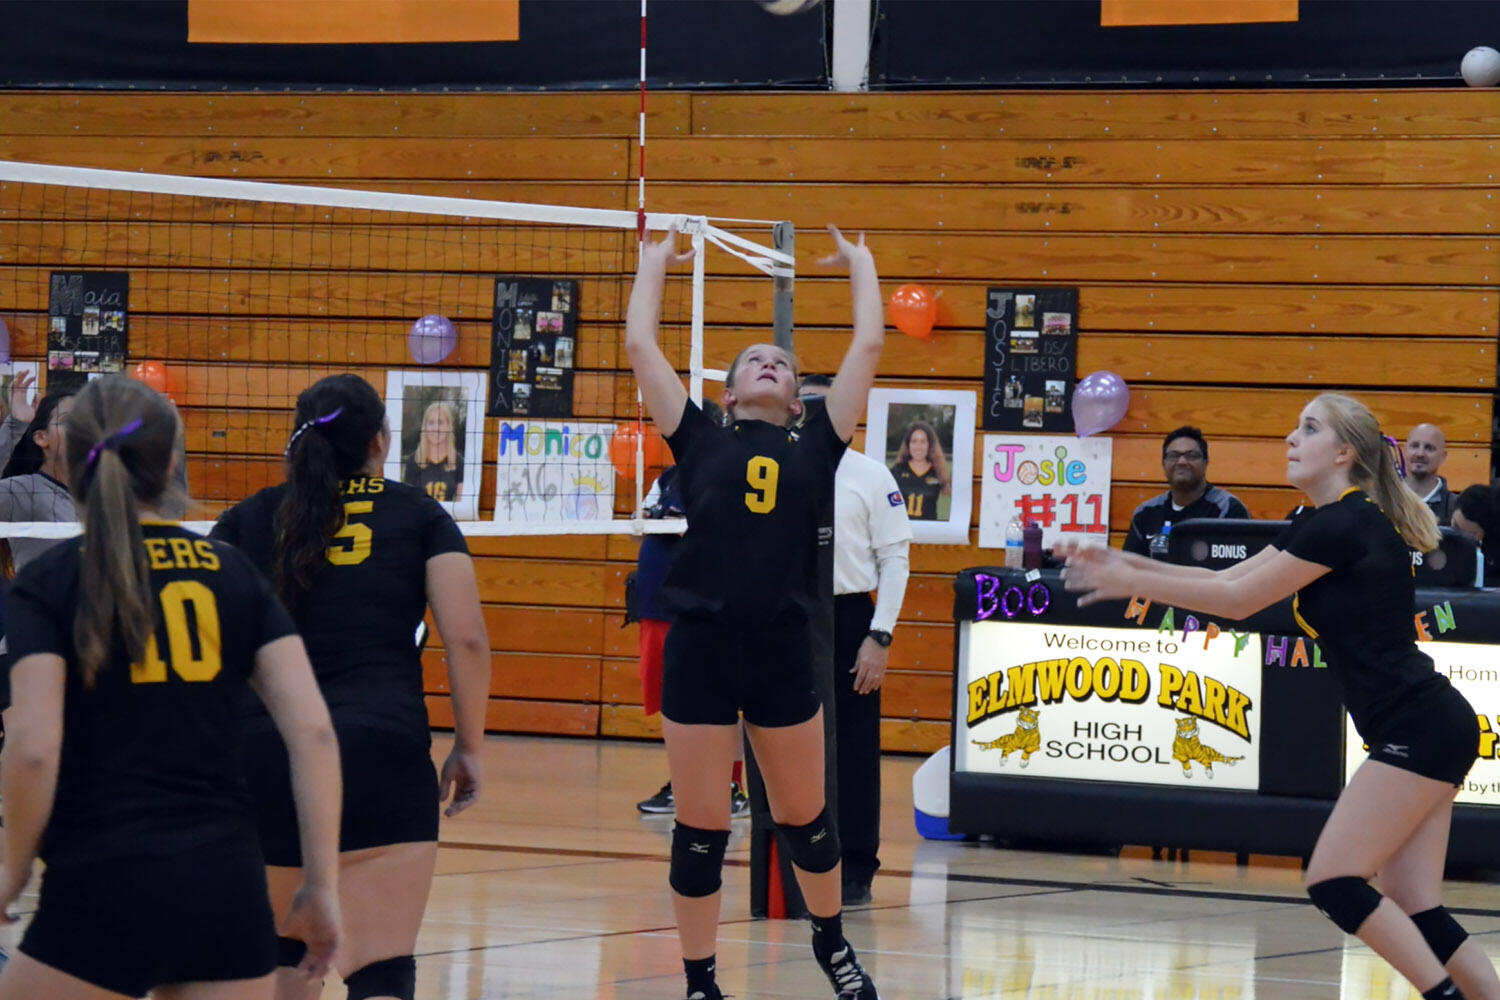 Wiktoria Stankiewicz competes in a girls volleyball match at EPHS.